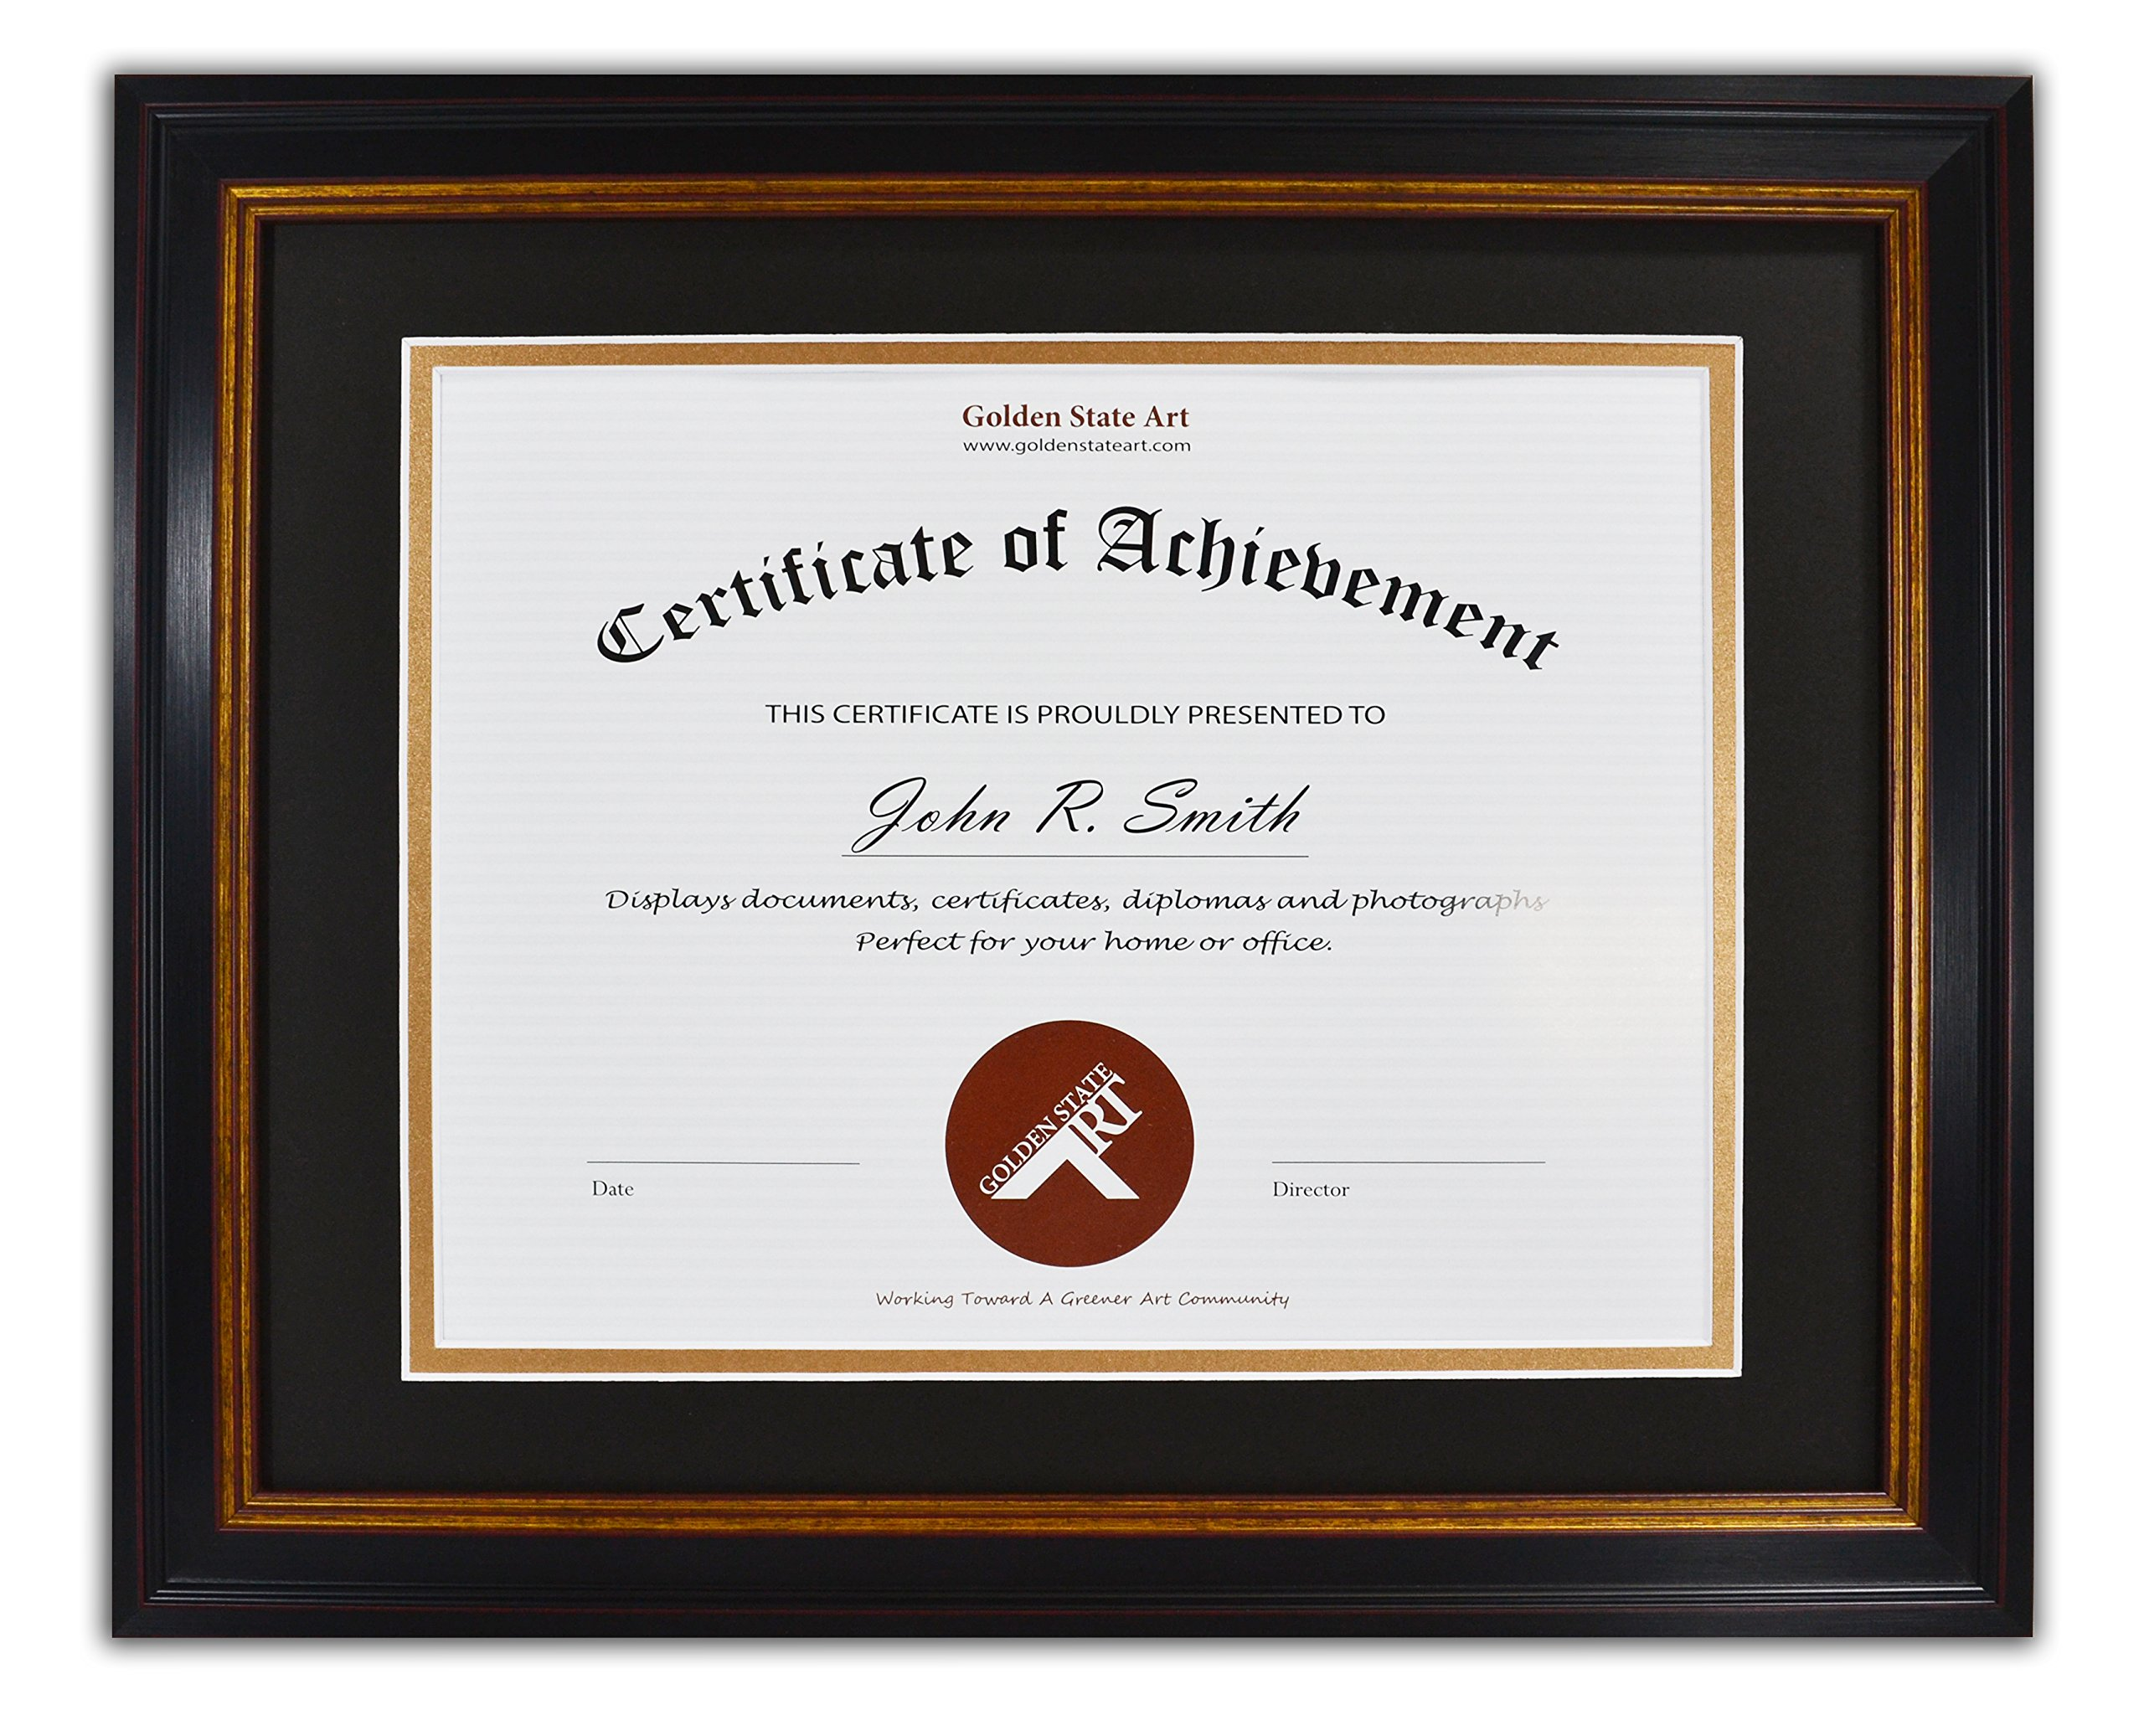 Golden State Art, 11x14 Frame for 8.5x11 Diploma/Certificate, Black Gold & Burgundy color. Includes Black Over Gold Double Mat and Real Glass